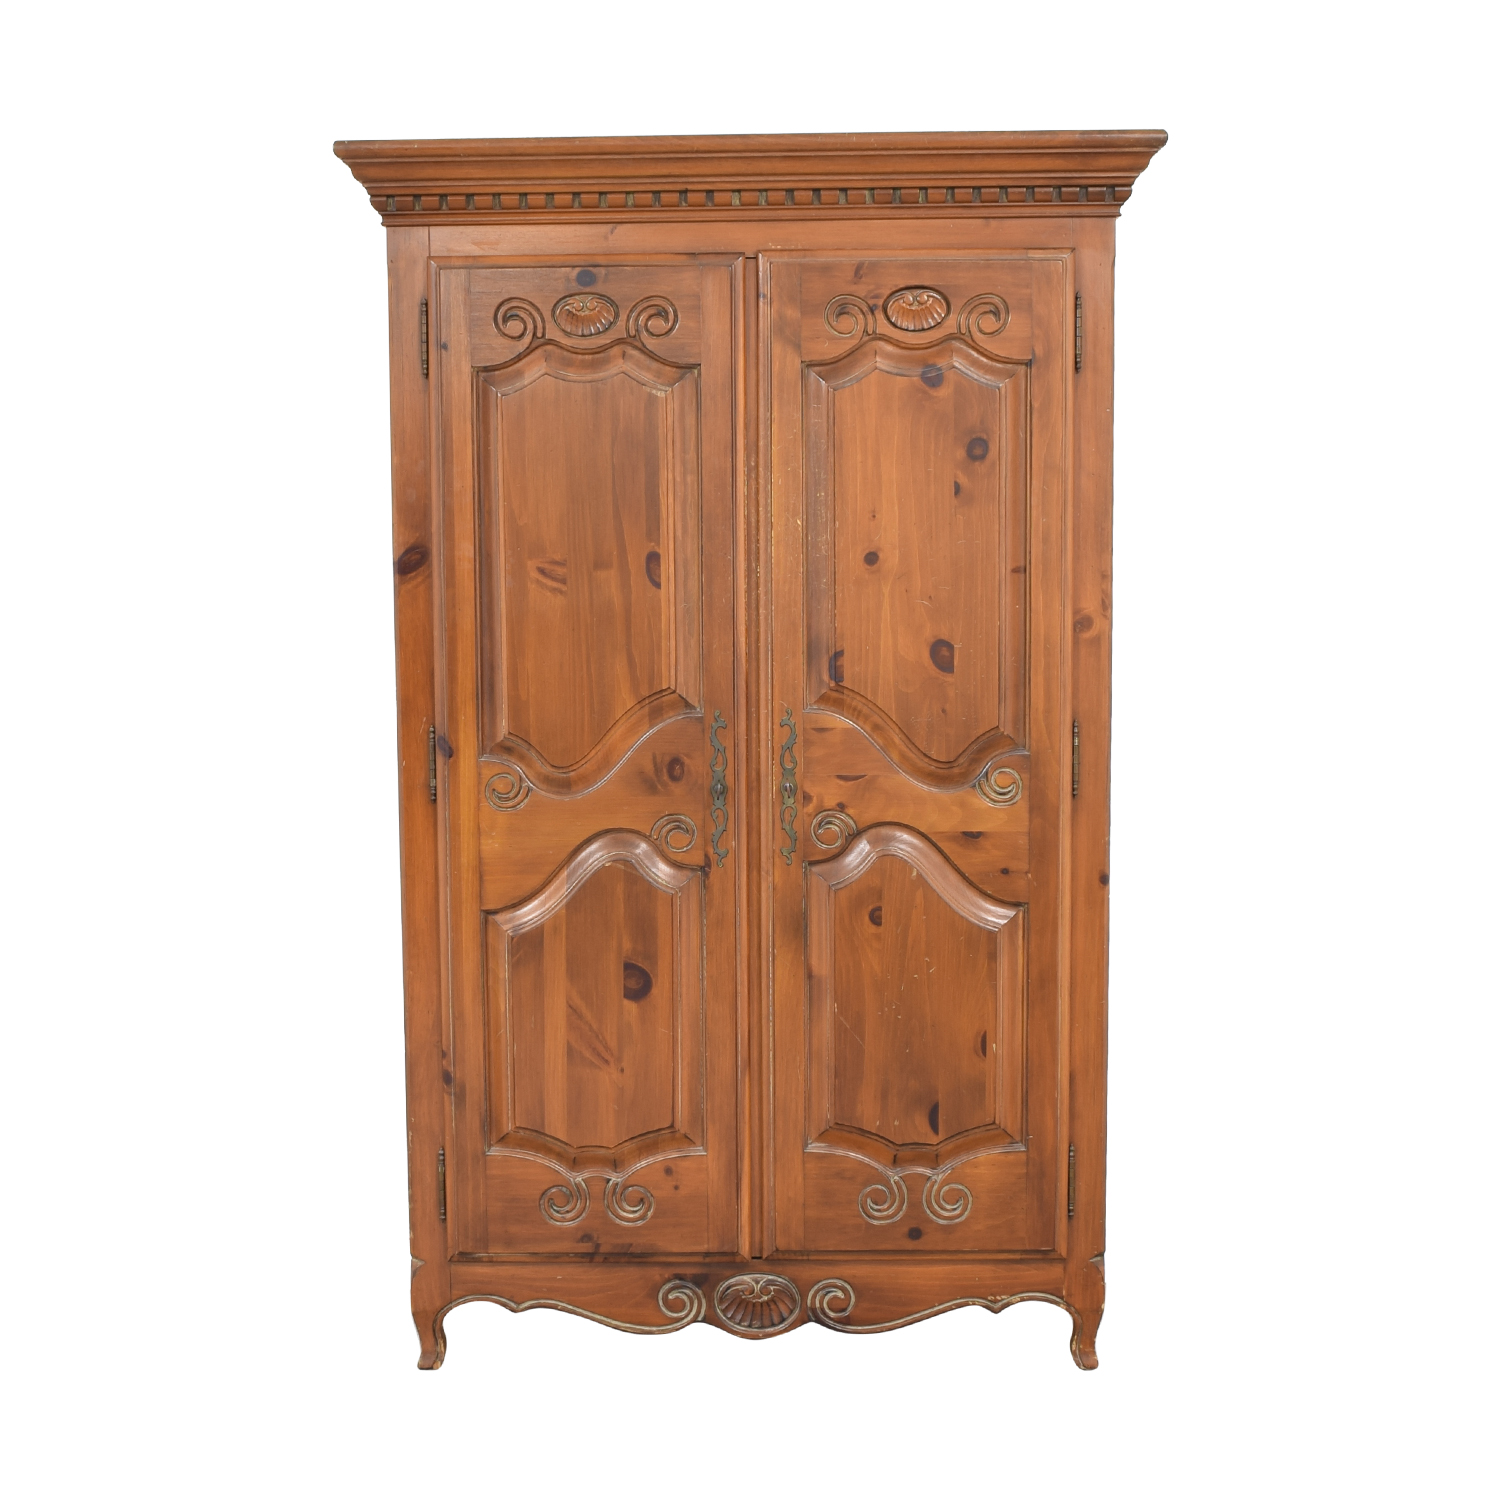 Ethan Allen Ethan Allen Country French Armoire on sale